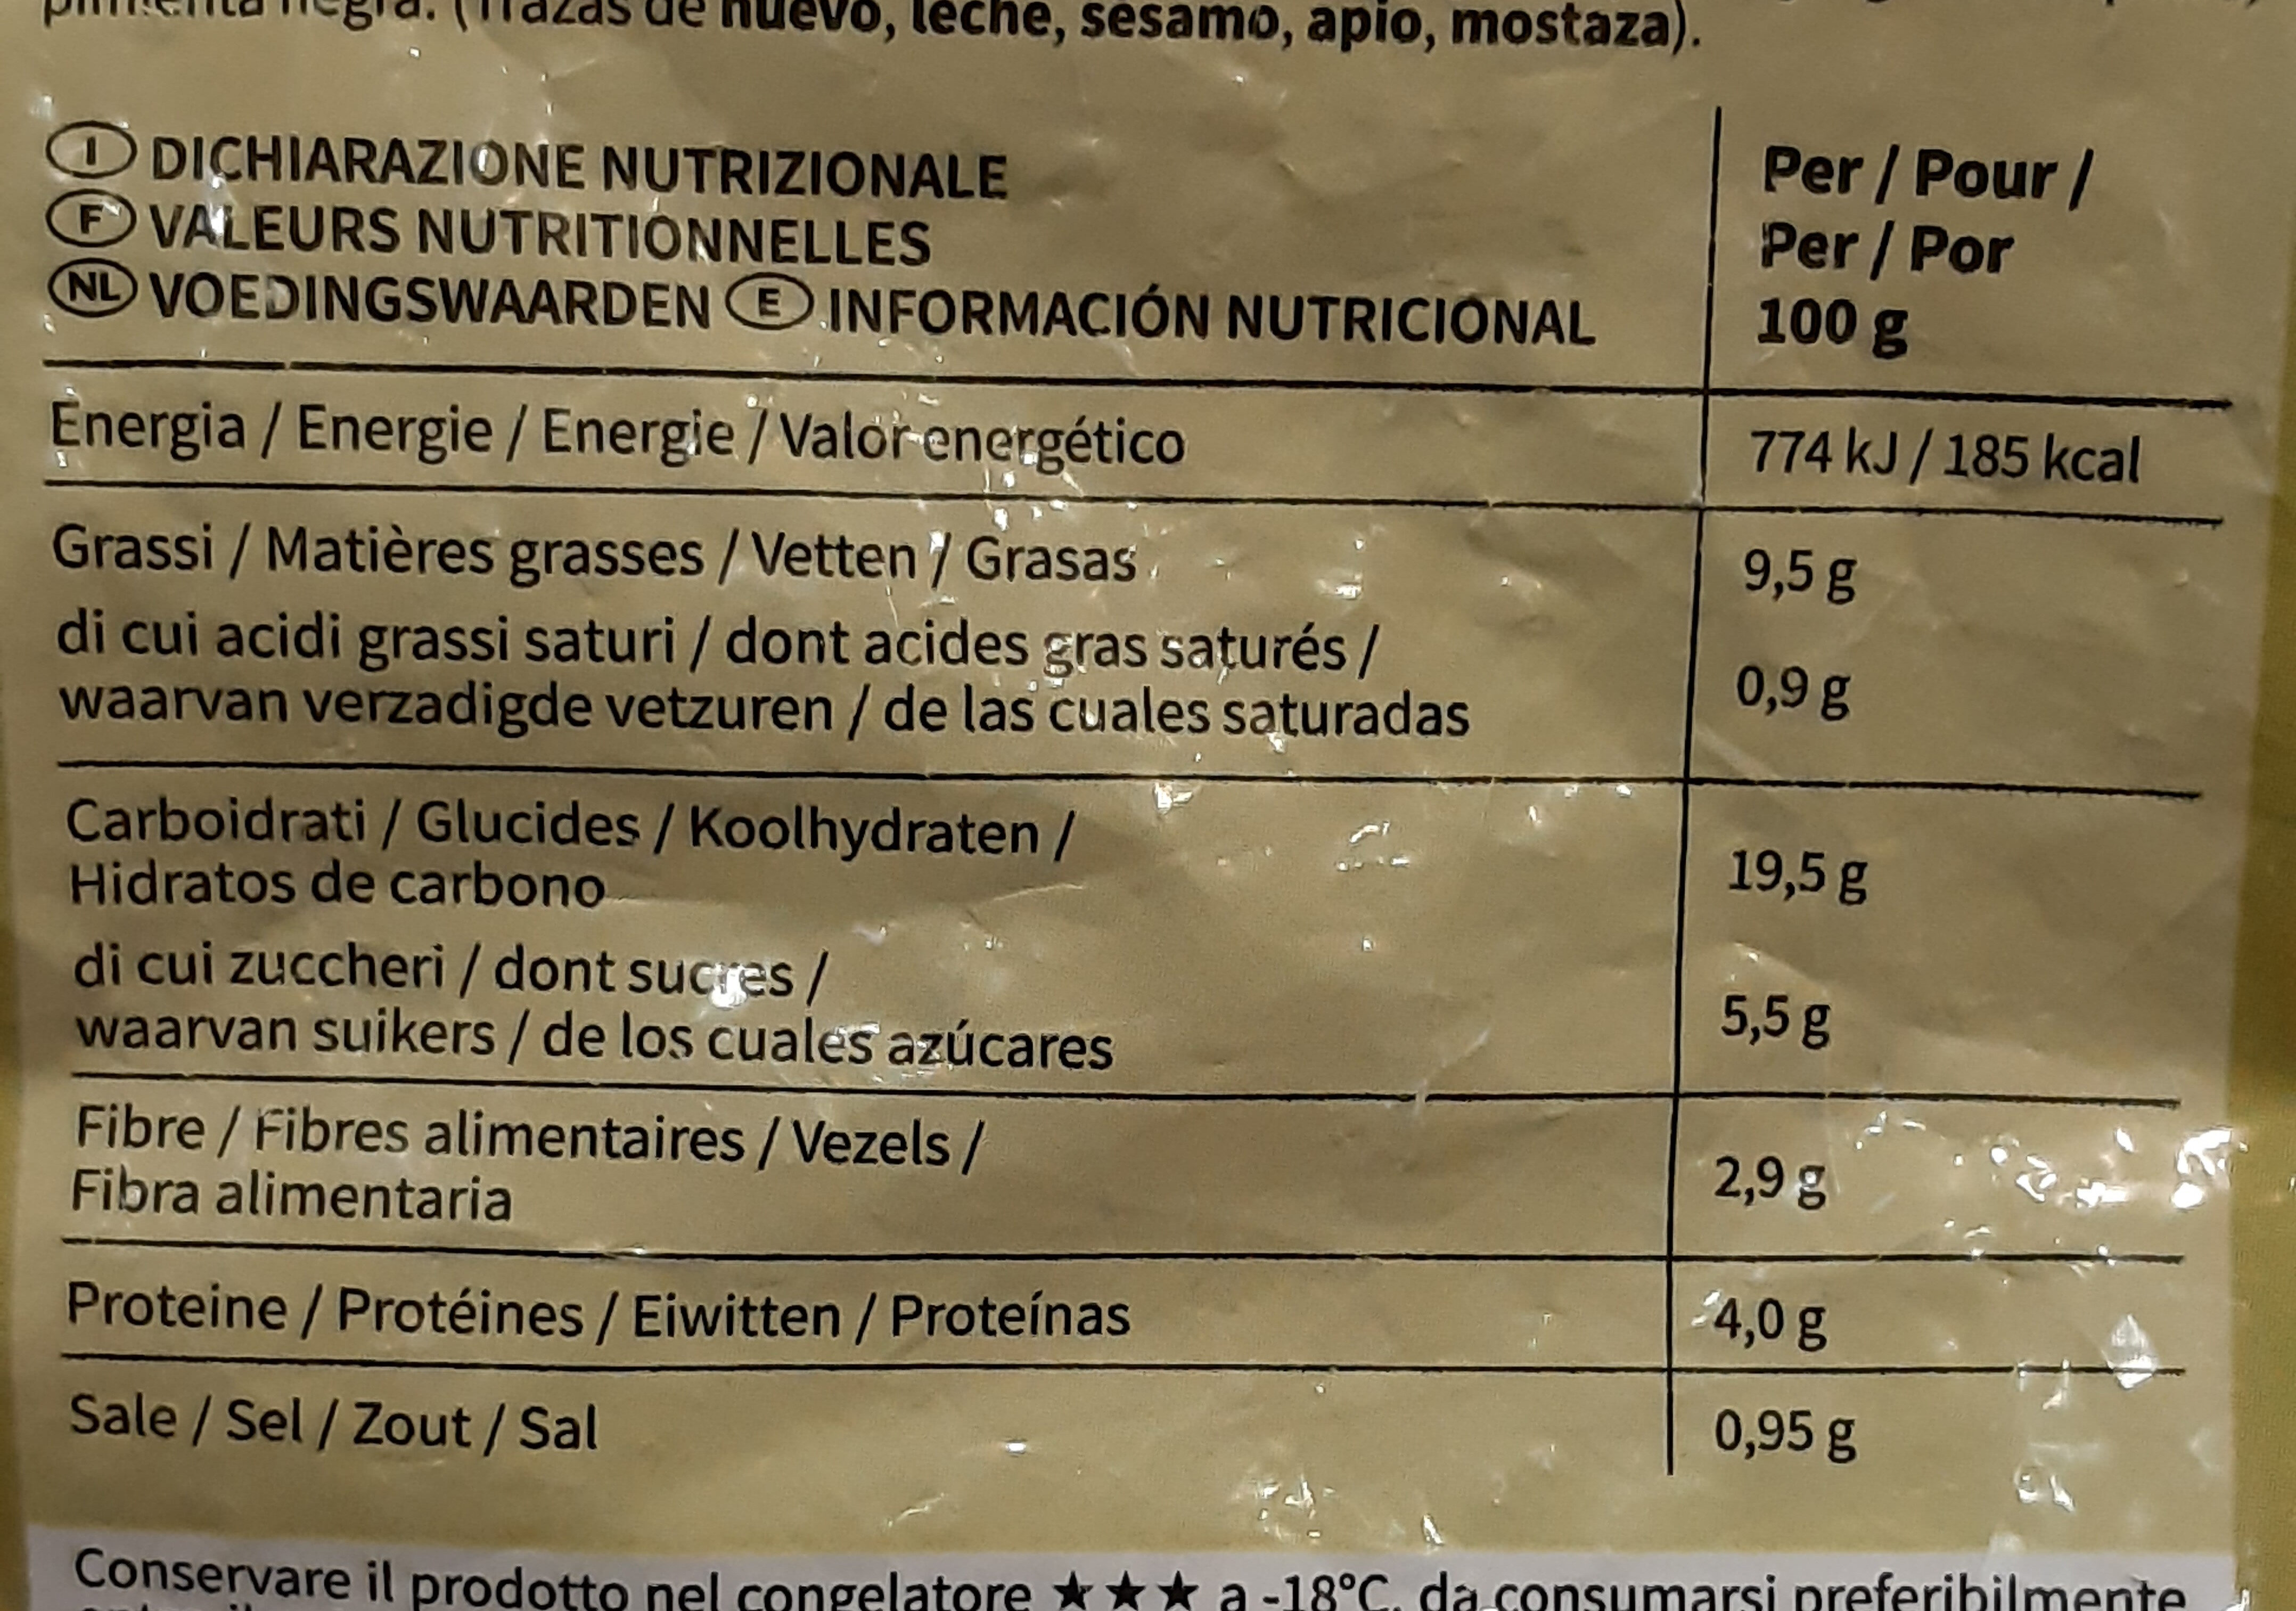 Medaillons de quinoa - Nutrition facts - fr